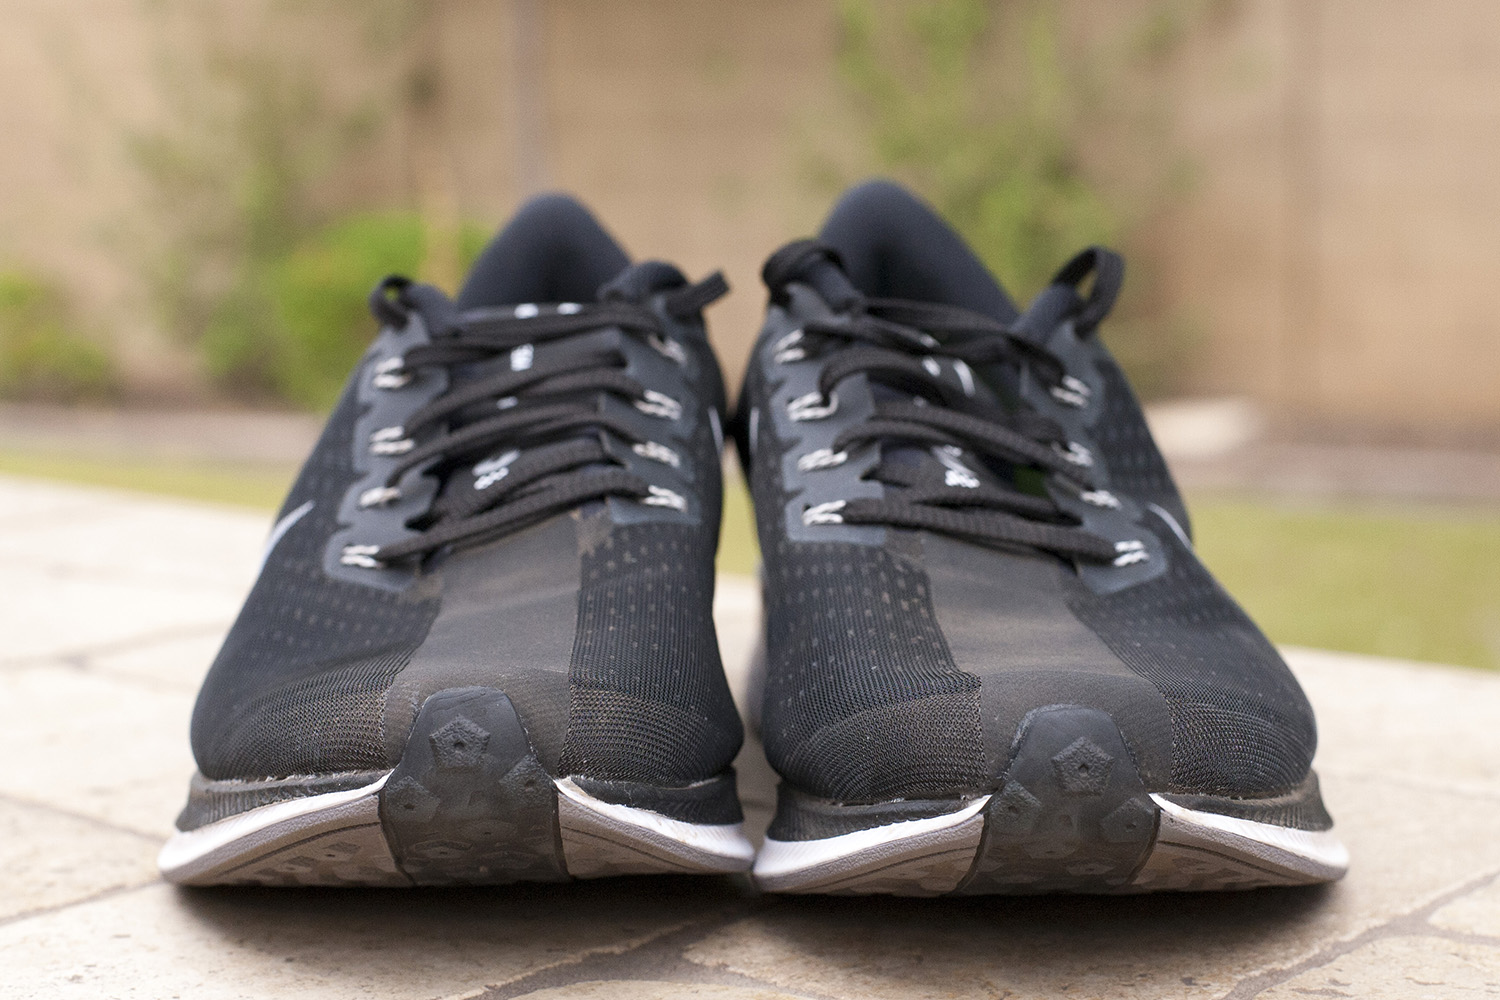 official photos 4b77e 60873 Every single run I had in this shoe threatened blisters for each of my  small toes, which is less than ideal. Sam had mentioned that he d had the  ...